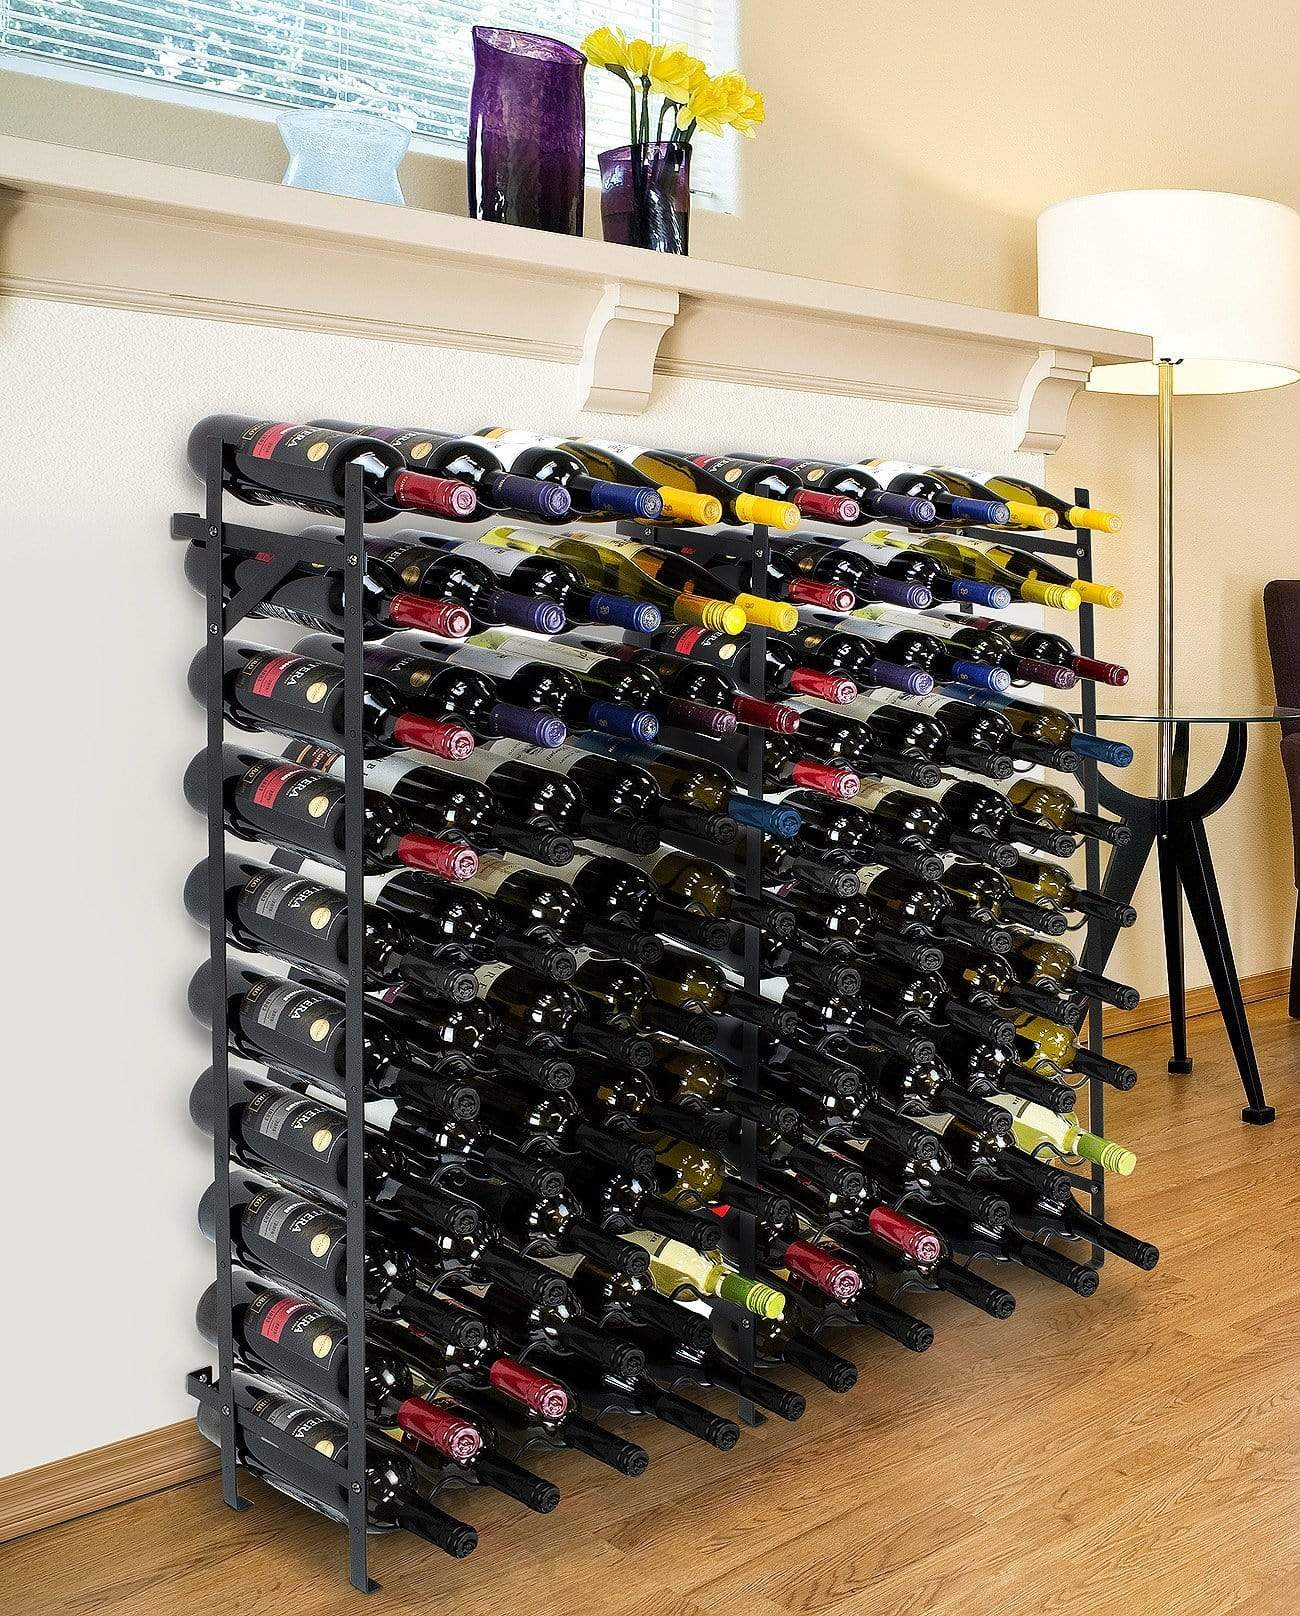 Explore sorbus display rack large capacity wobble free shelves storage stand for bar basement wine cellar kitchen dining room etc black height 40 100 bottle